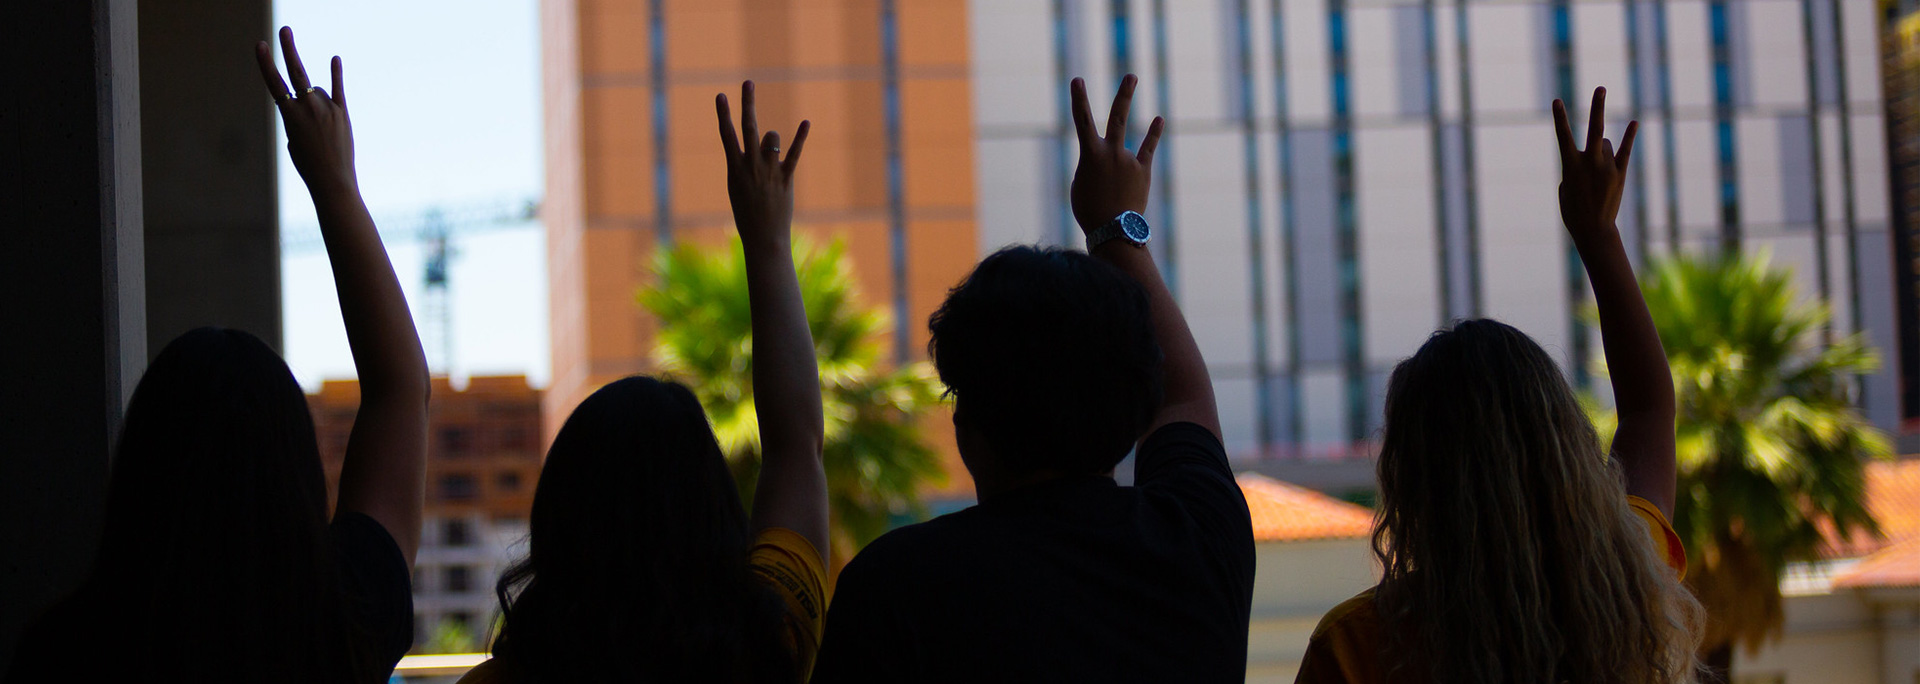 The silhouettes of four cronkite students holding up the ASU pitchfork.